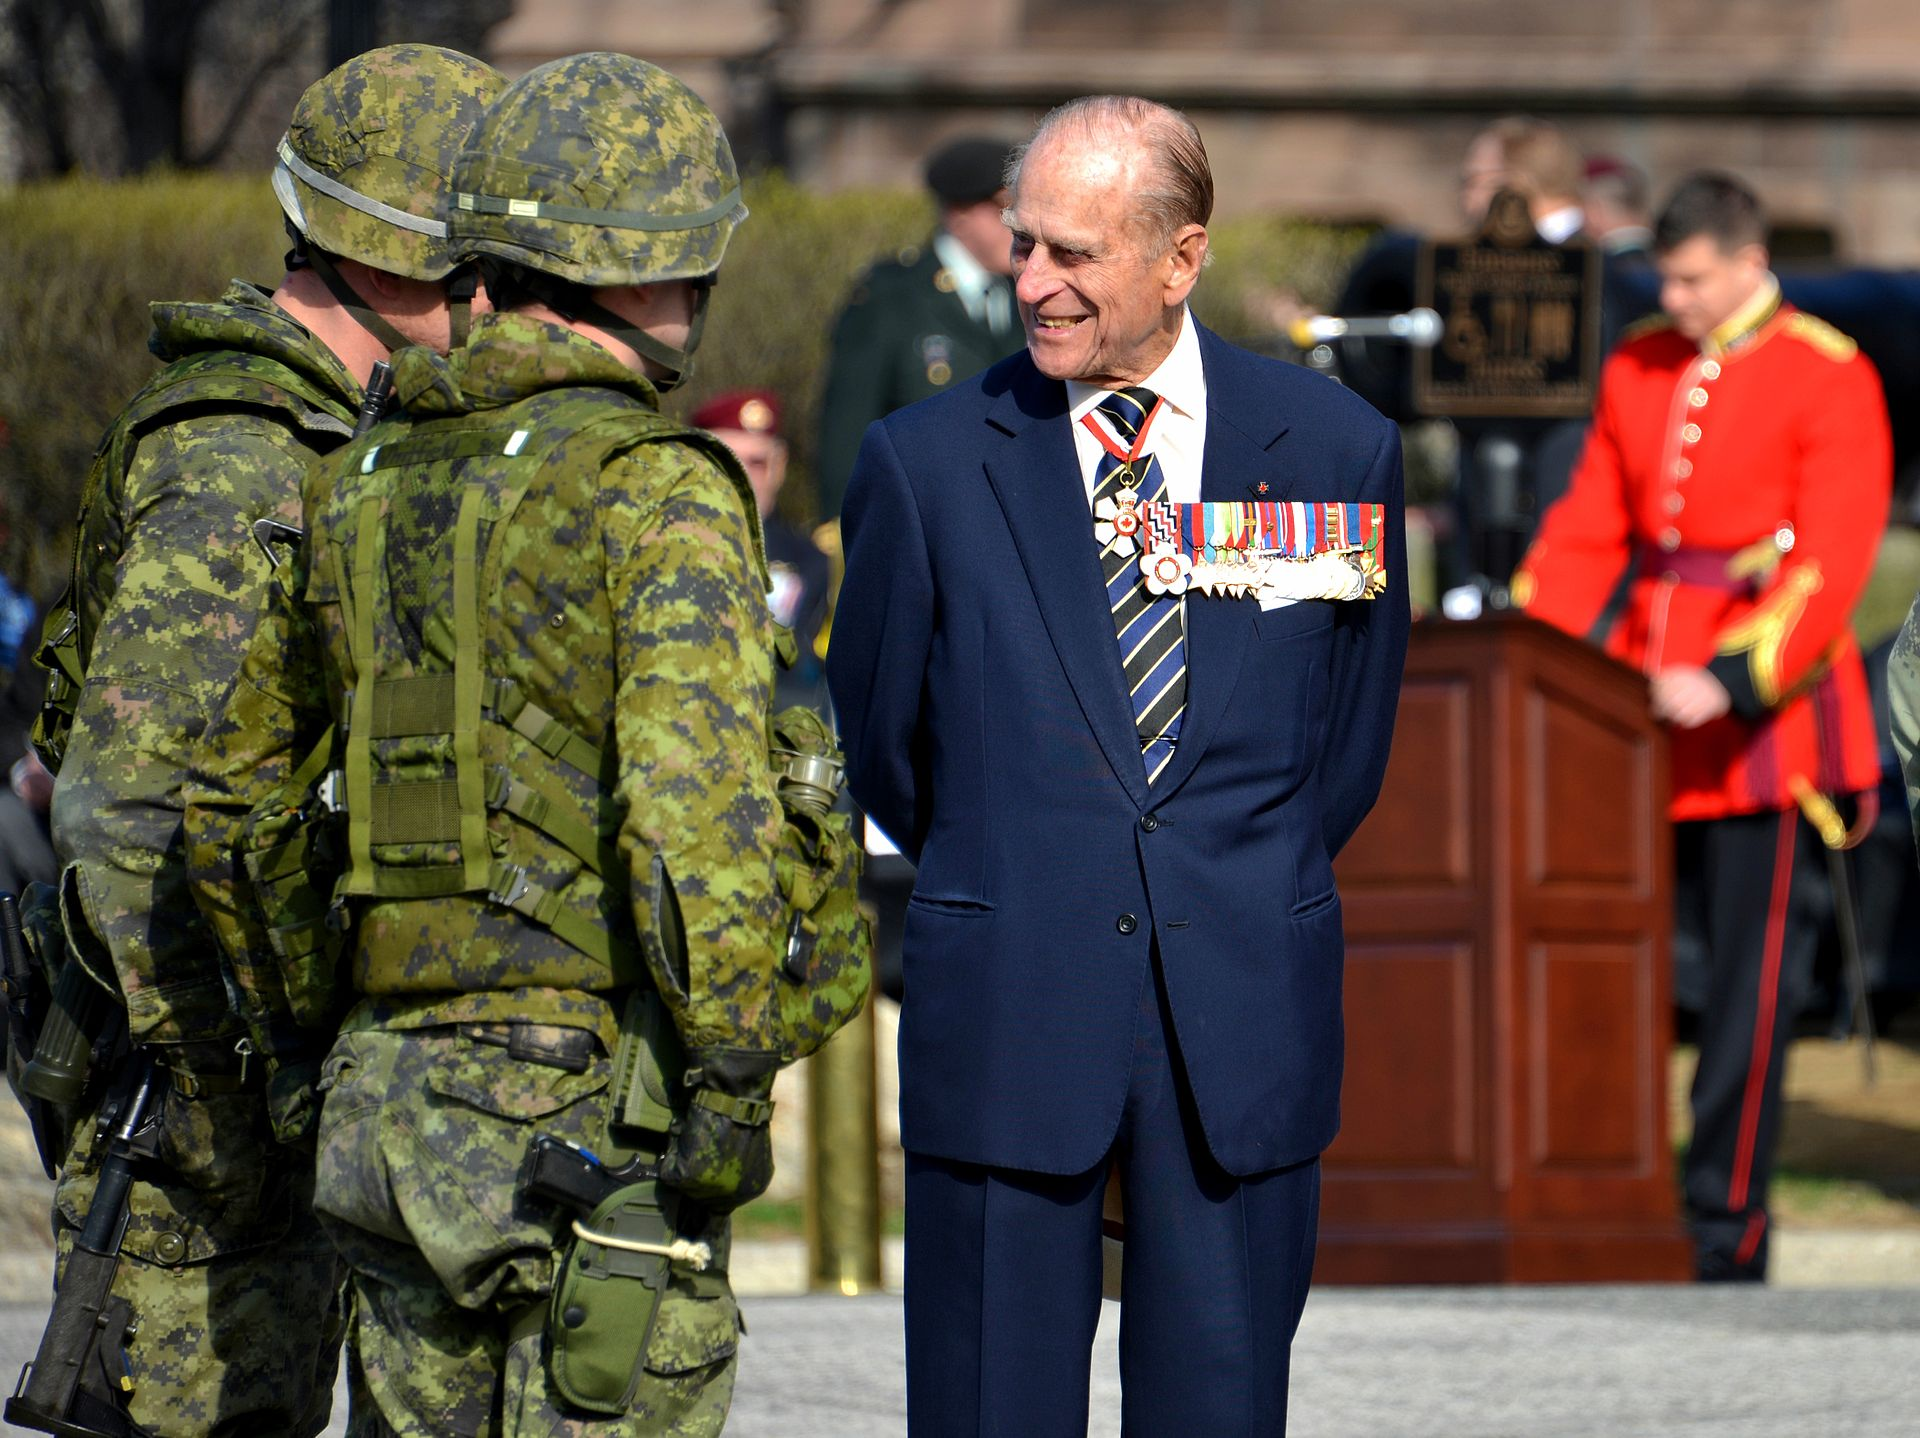 The_Duke_of_Edinburgh_as_Colonel-in-Chief_of_the_Royal_Canadian_Regiment